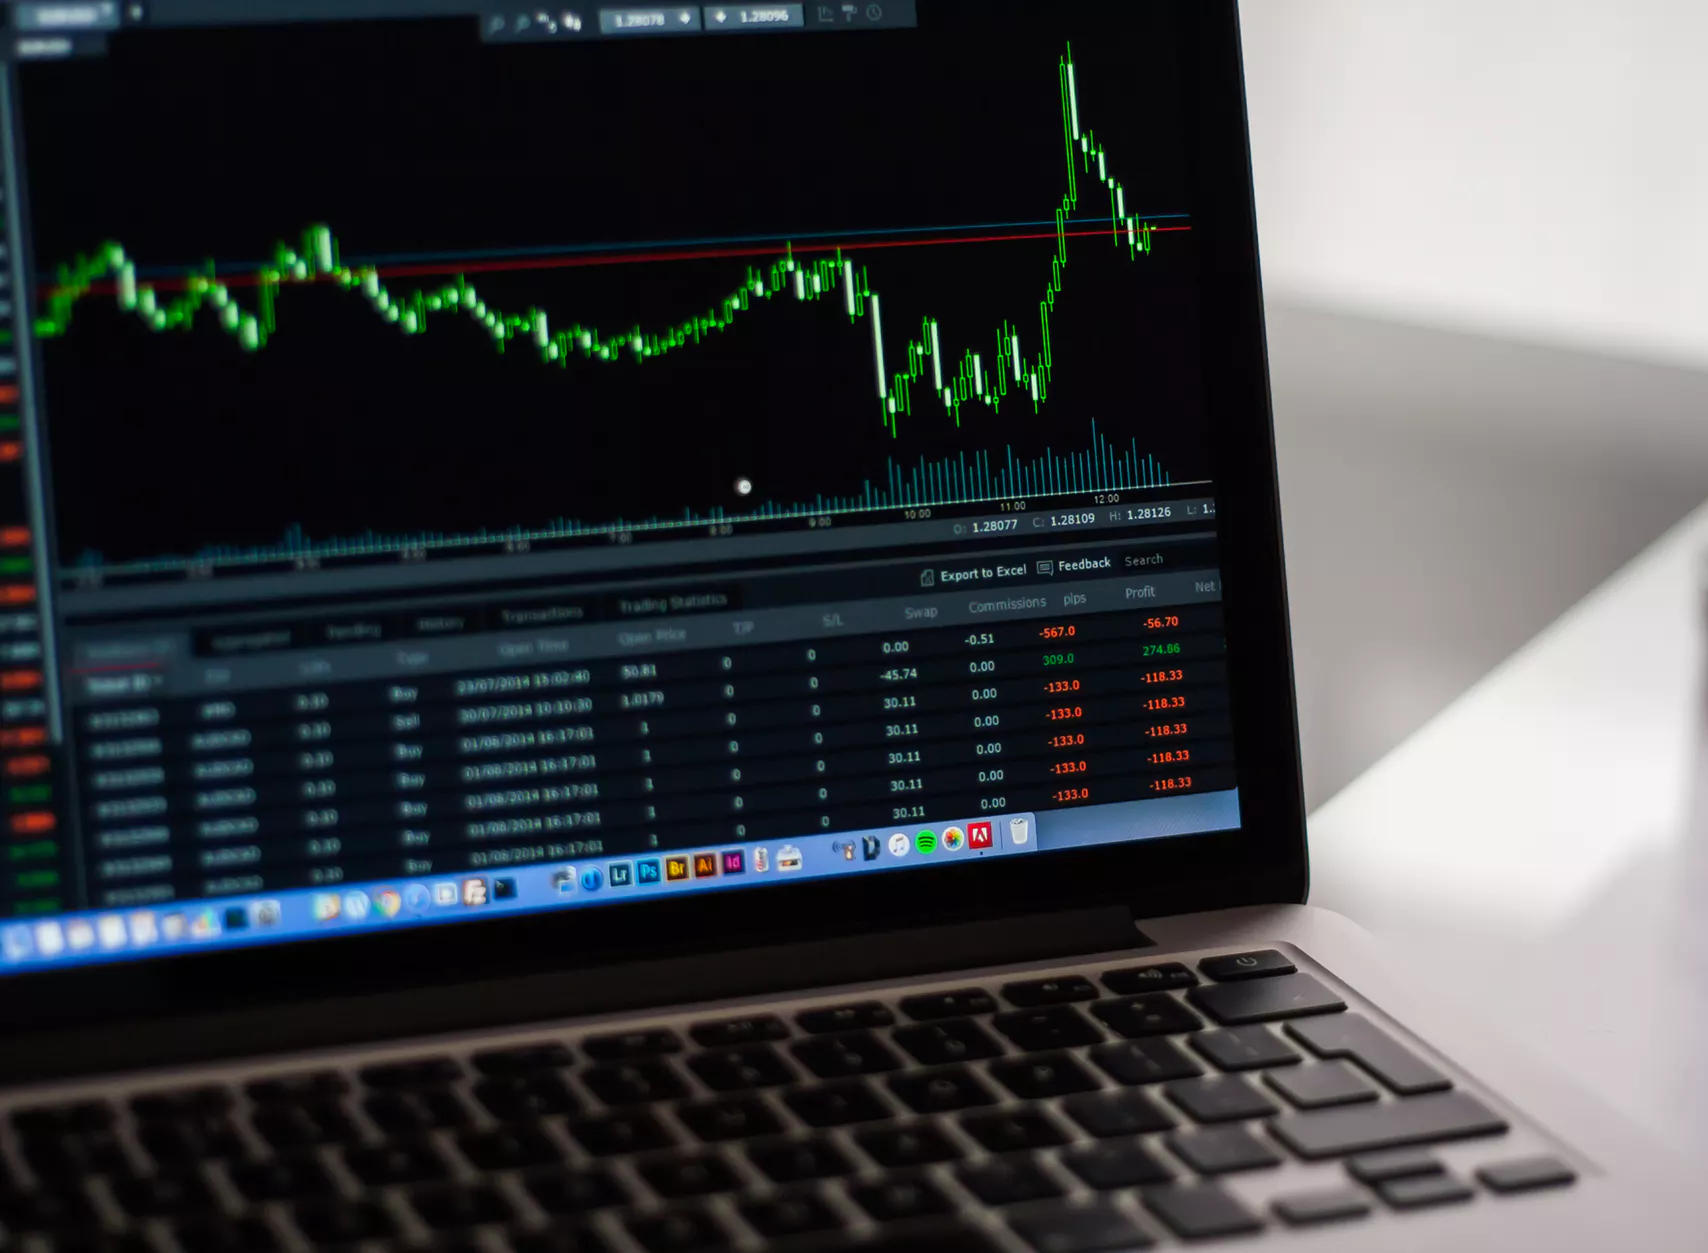 adx chart laptop online trading